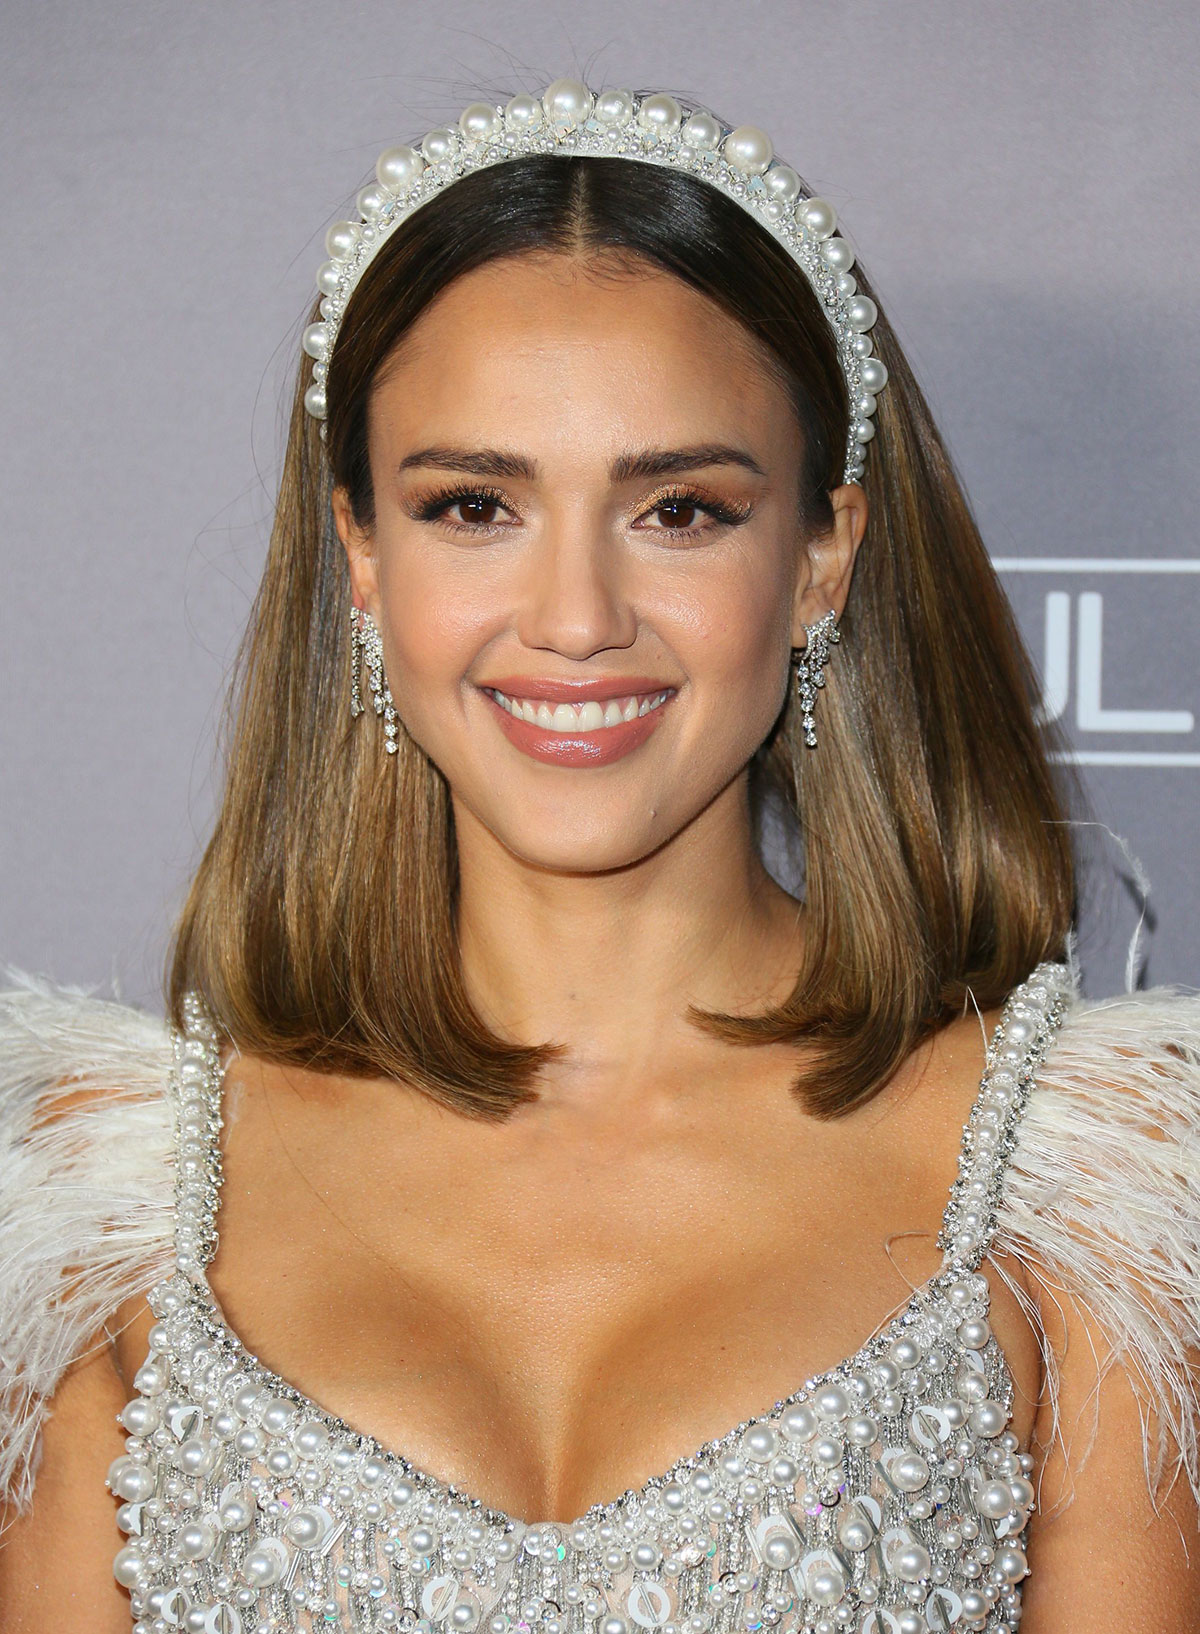 Hairstyles to follow from Kate Winslet, Jessica Alba, and Emma Watson 4